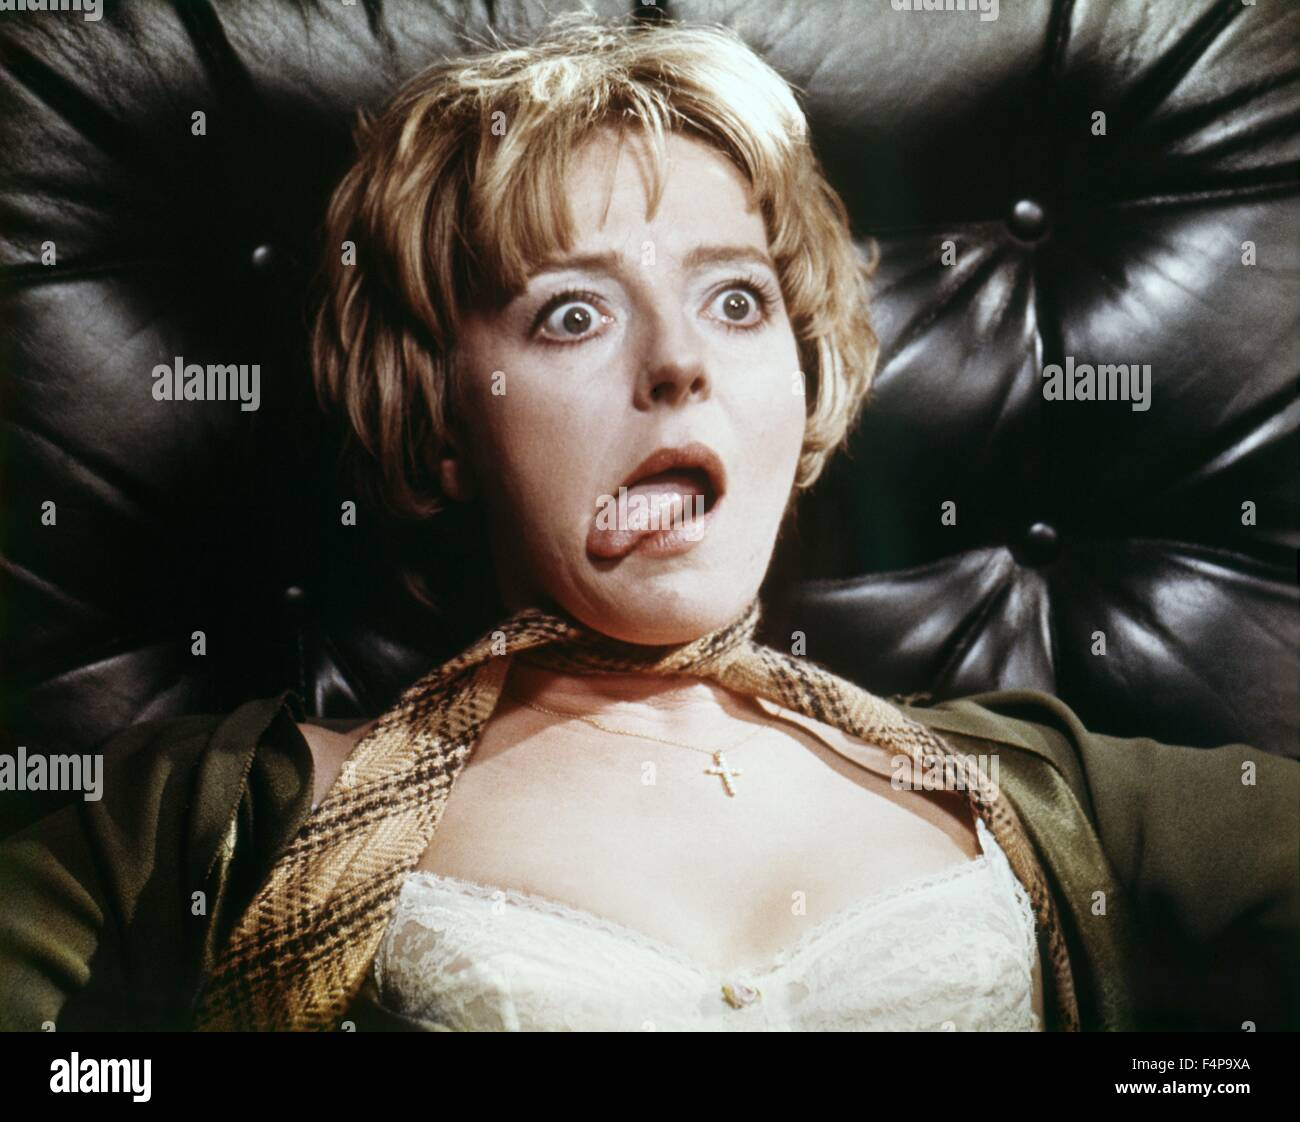 Barbara Leigh-Hunt / Frenzy 1972 directed by Alfred Hitchcock - Stock Image